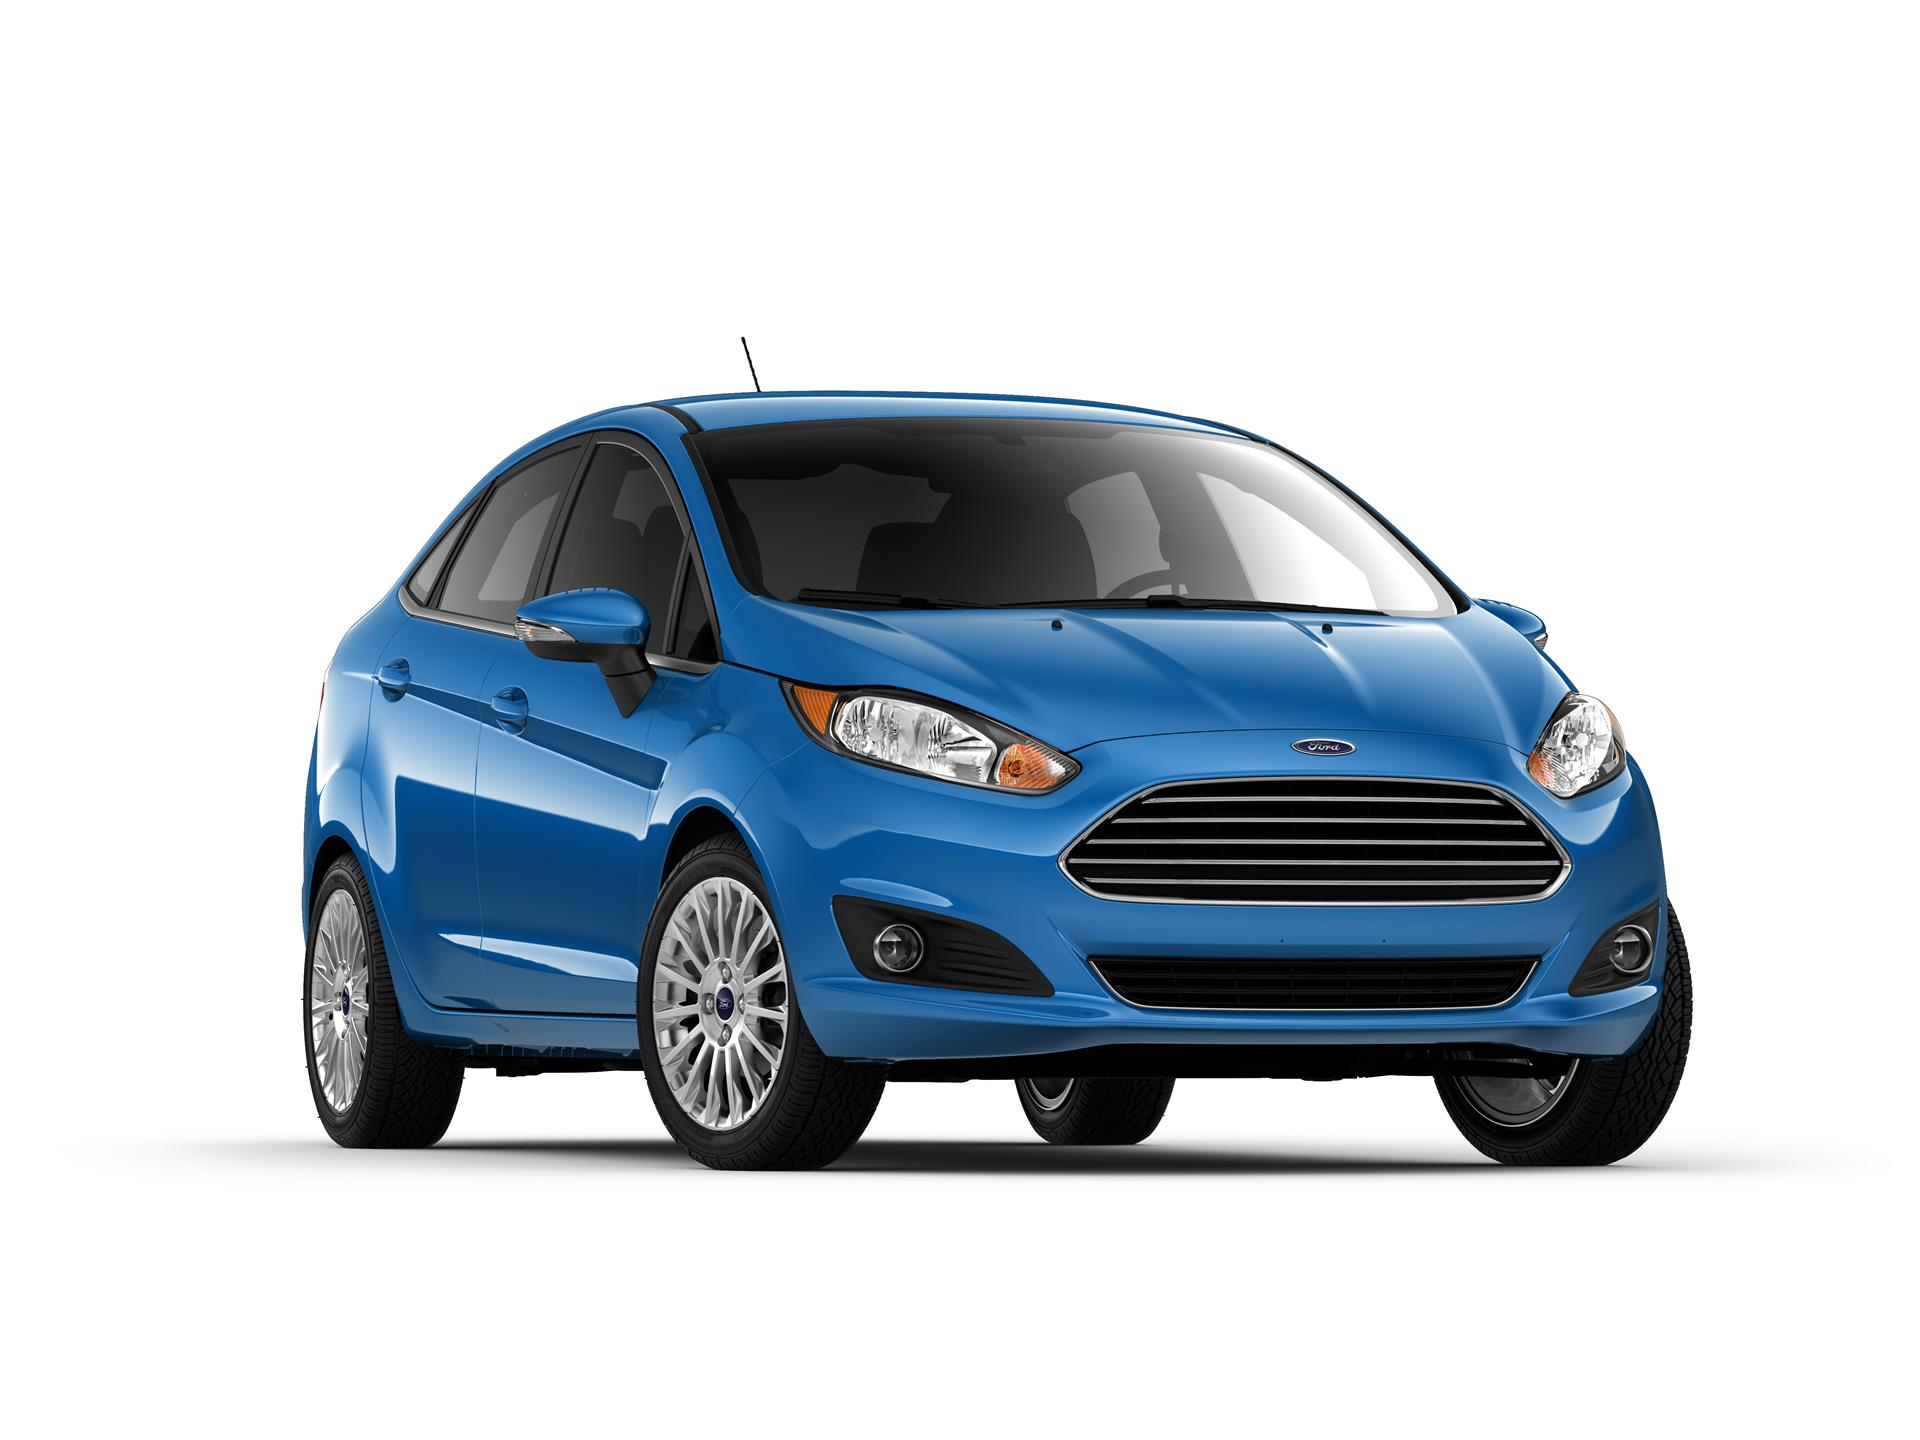 2014 ford fiesta st news pictures specifications and information car interior design. Black Bedroom Furniture Sets. Home Design Ideas